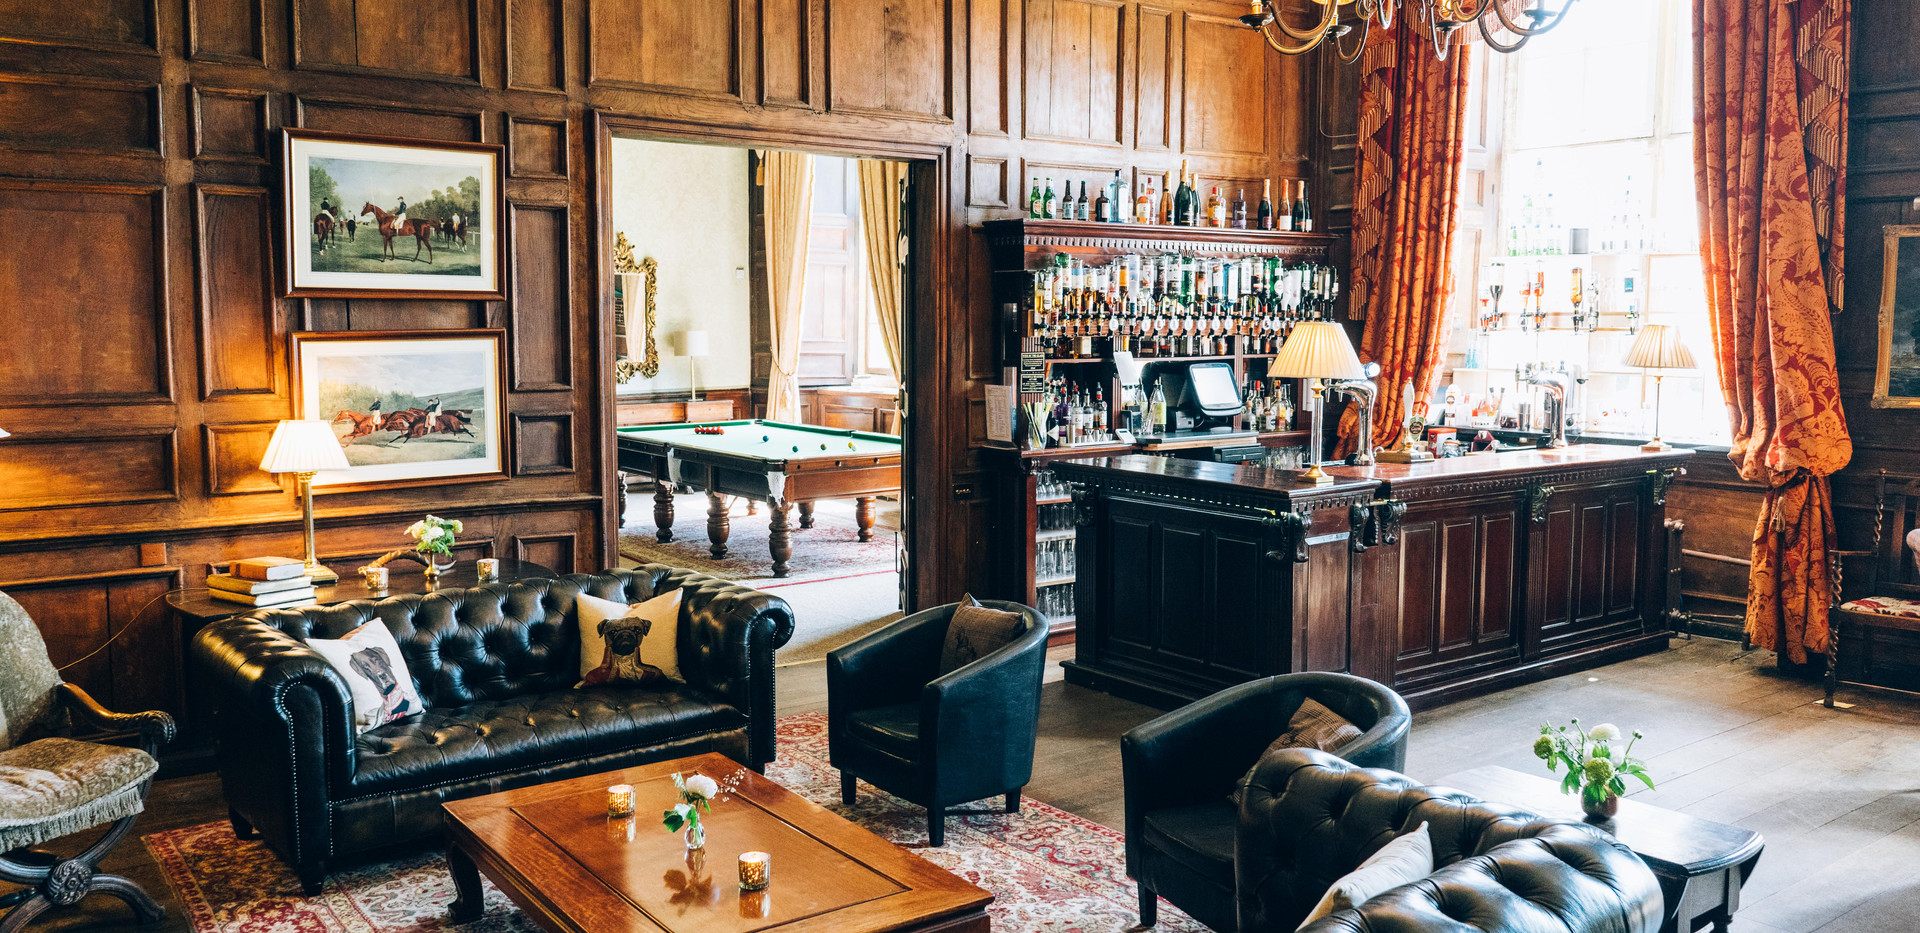 The Library Bar opens from Midday for 2 hours prior to the ceremony. It is opened in conjunction with the Morning Room